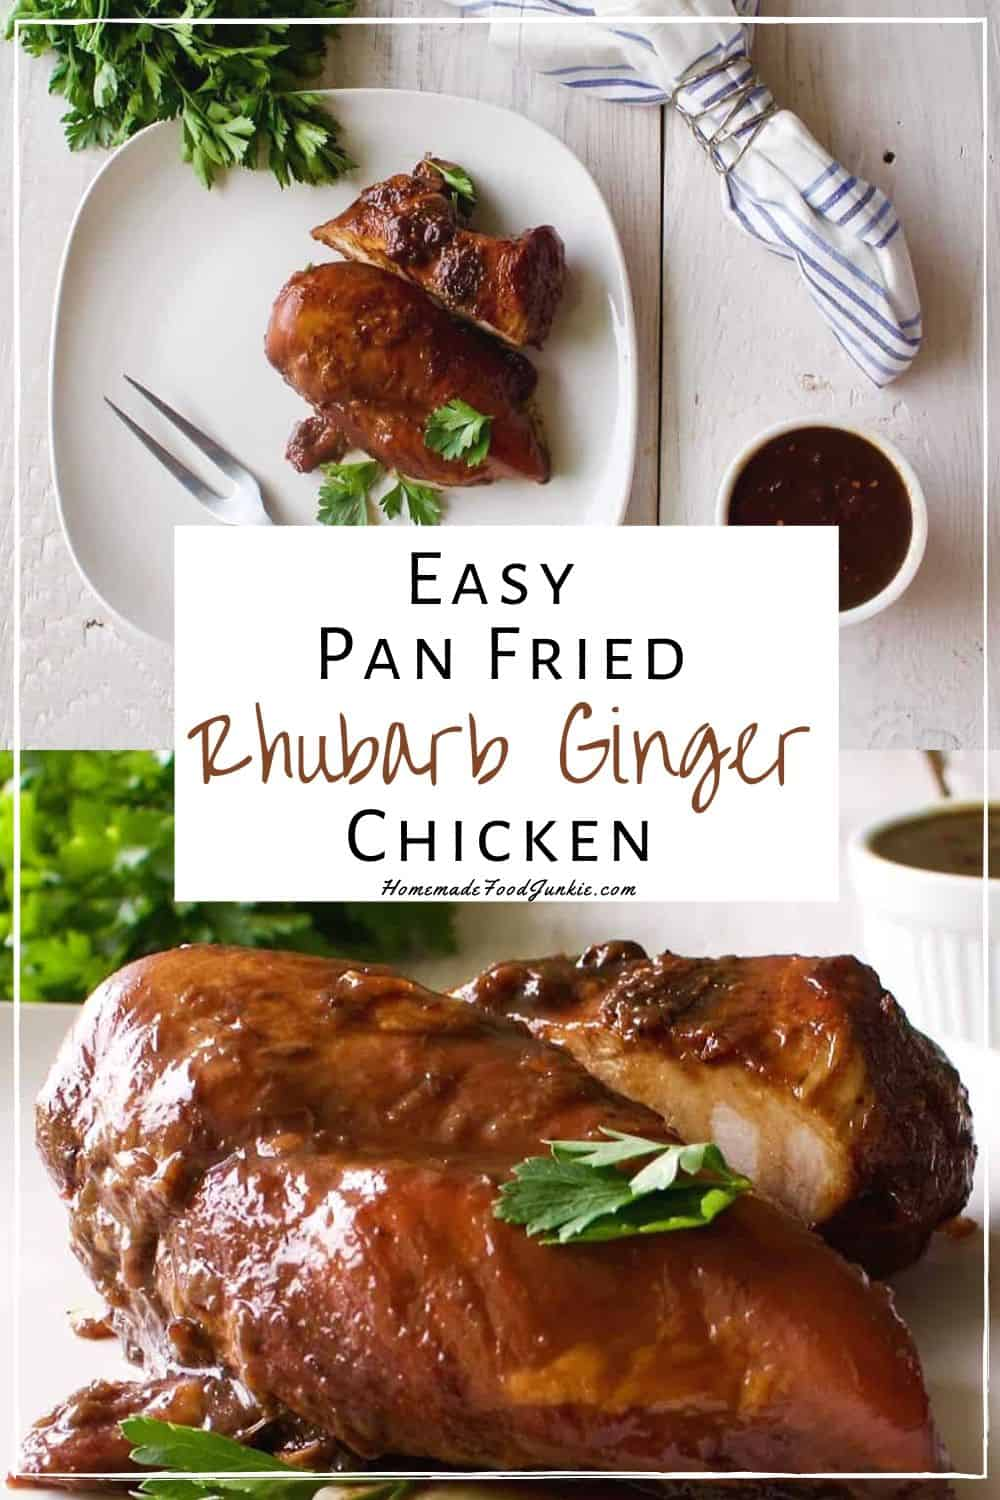 Easy pan fried rhubarb chicken-pin image